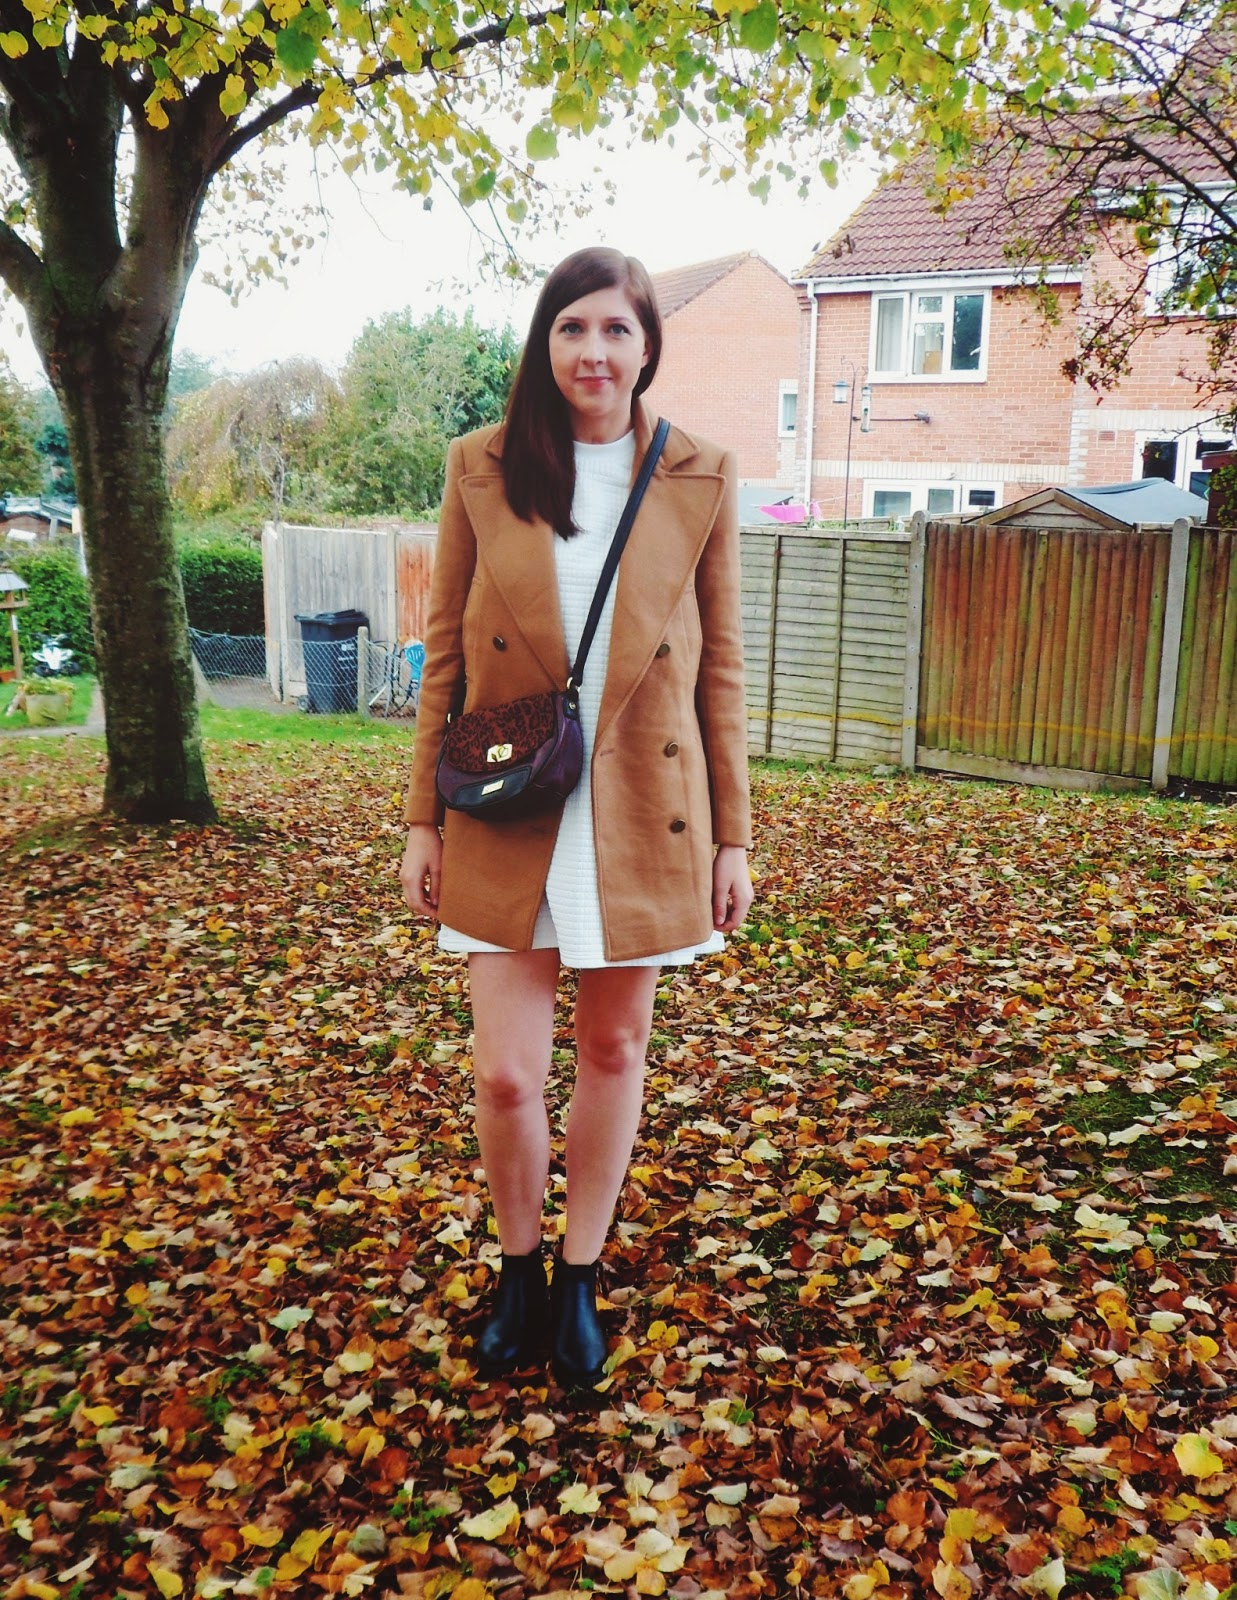 fbloggers, fashion, fashionbloggers, ootd, outfitoftheday, wiw, whatimwearing, whatibought, lotd, lookoftheday, asos, marlalondon, primark, camelcoat, whitedress, trapezedress, asseenonme, outfitpost, autumn, autumnwinter2014